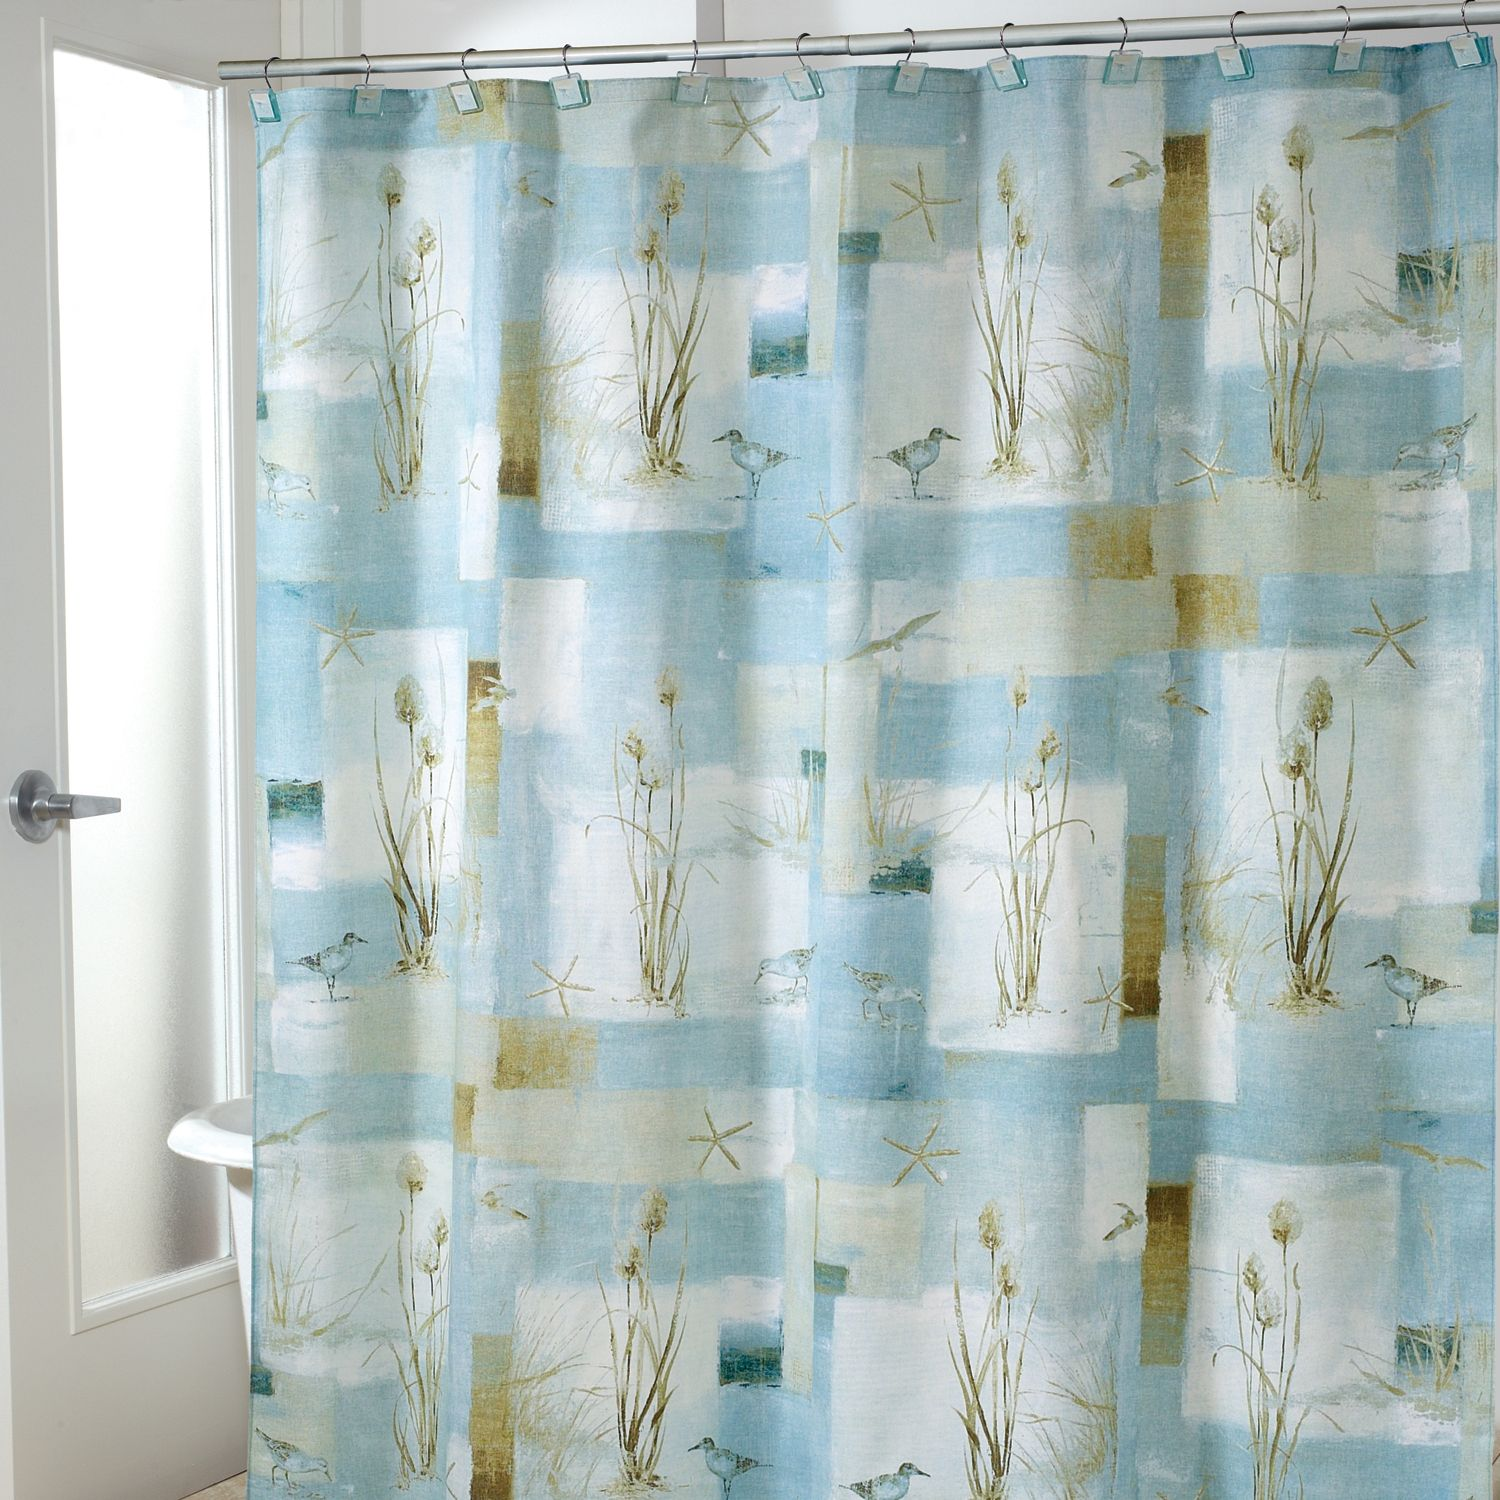 Exceptionnel Avanti Blue Waters Fabric Shower Curtain